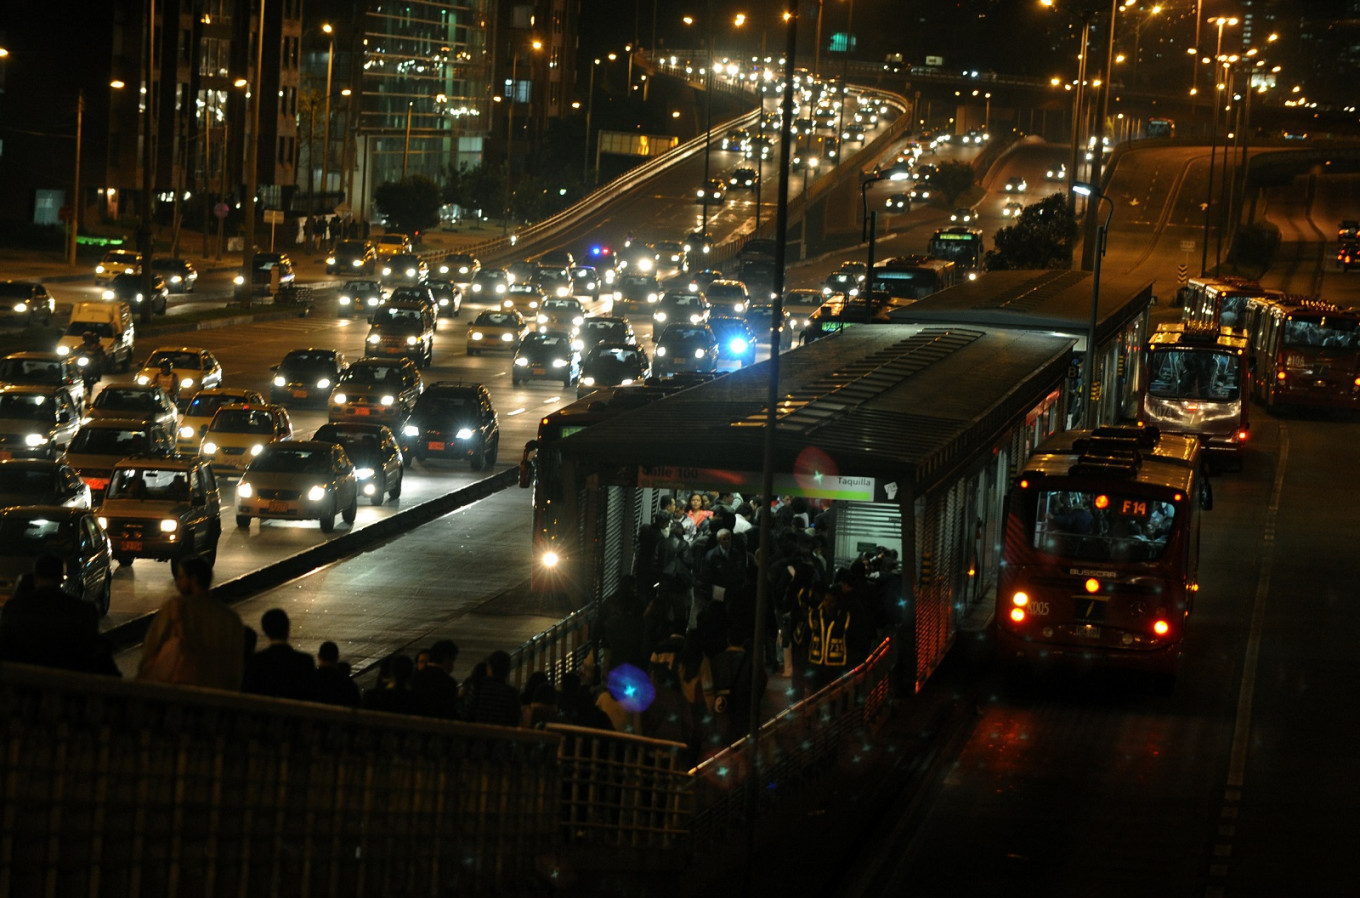 Latin American and European cities dominate list of world's most congested cities